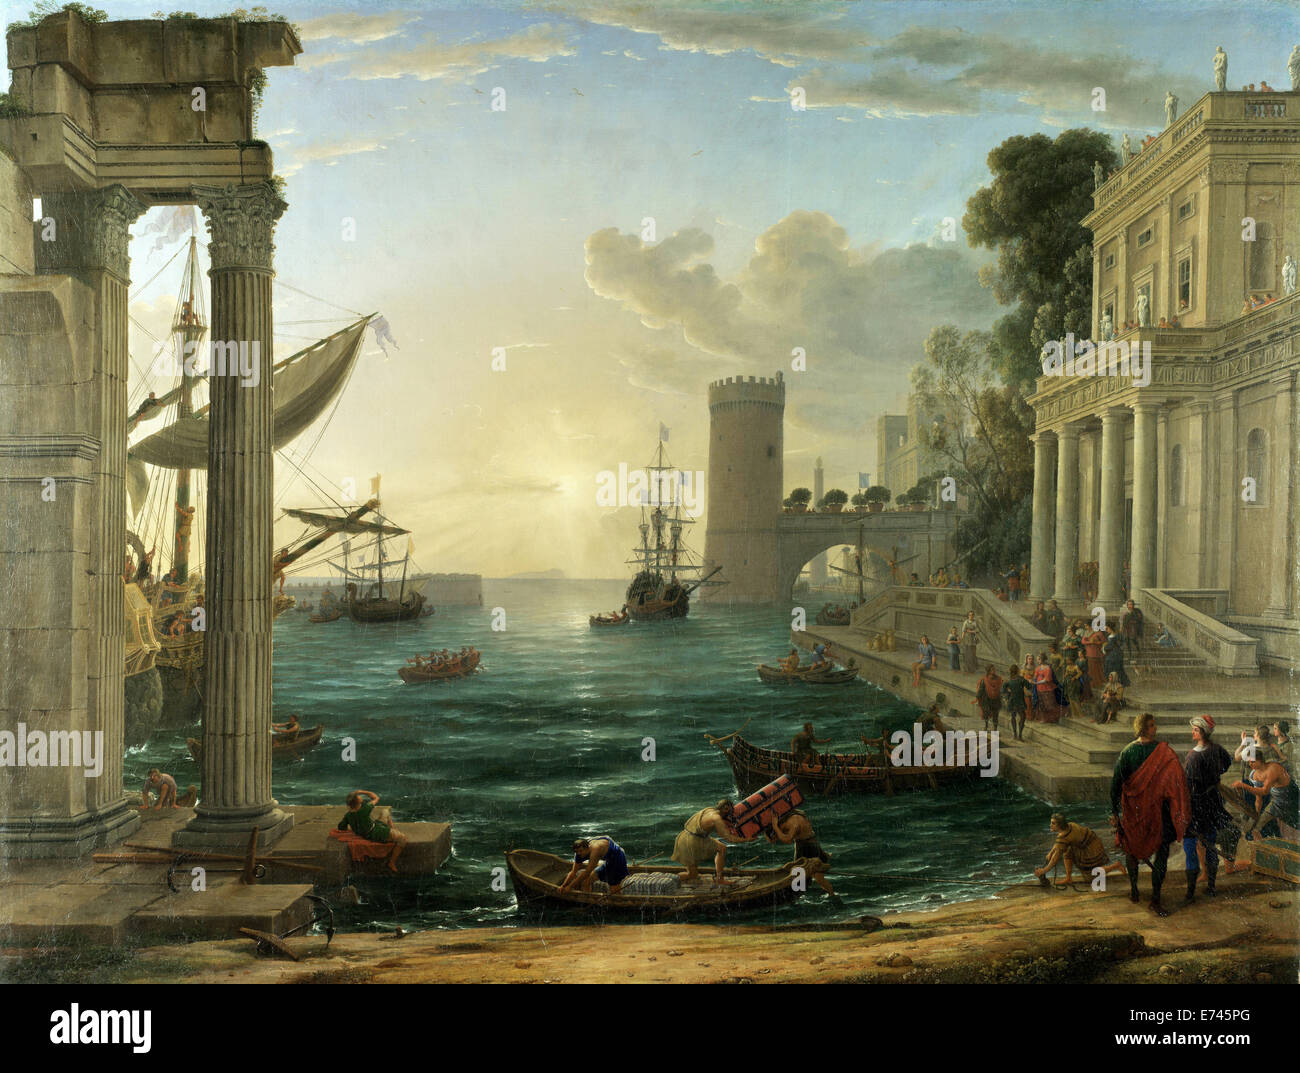 Seaport with the Embarkation of the Queen of Sheba - by Claude Lorrain, 1646 - Stock Image